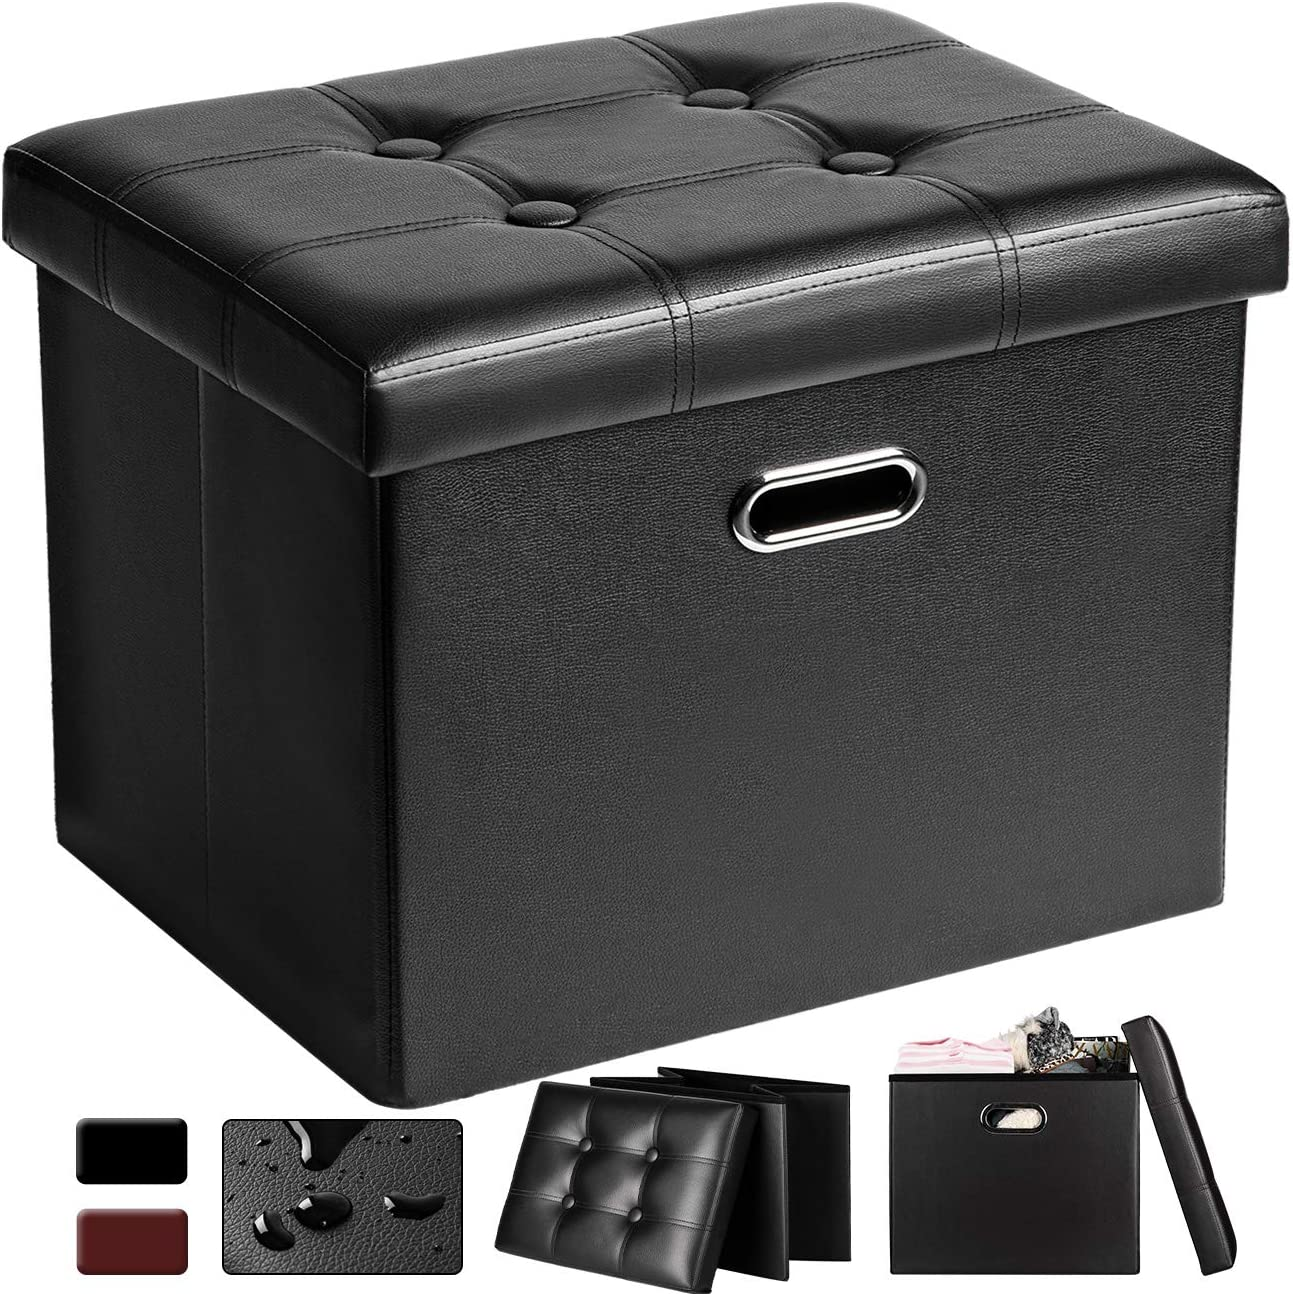 COSYLAND Ottoman with Storage Folding Leather Ottoman Footrest Foot Stool Black Ottoman for Room Small Rectangle Collapsible Bench Furniture with Handles Lid 17x15x13in